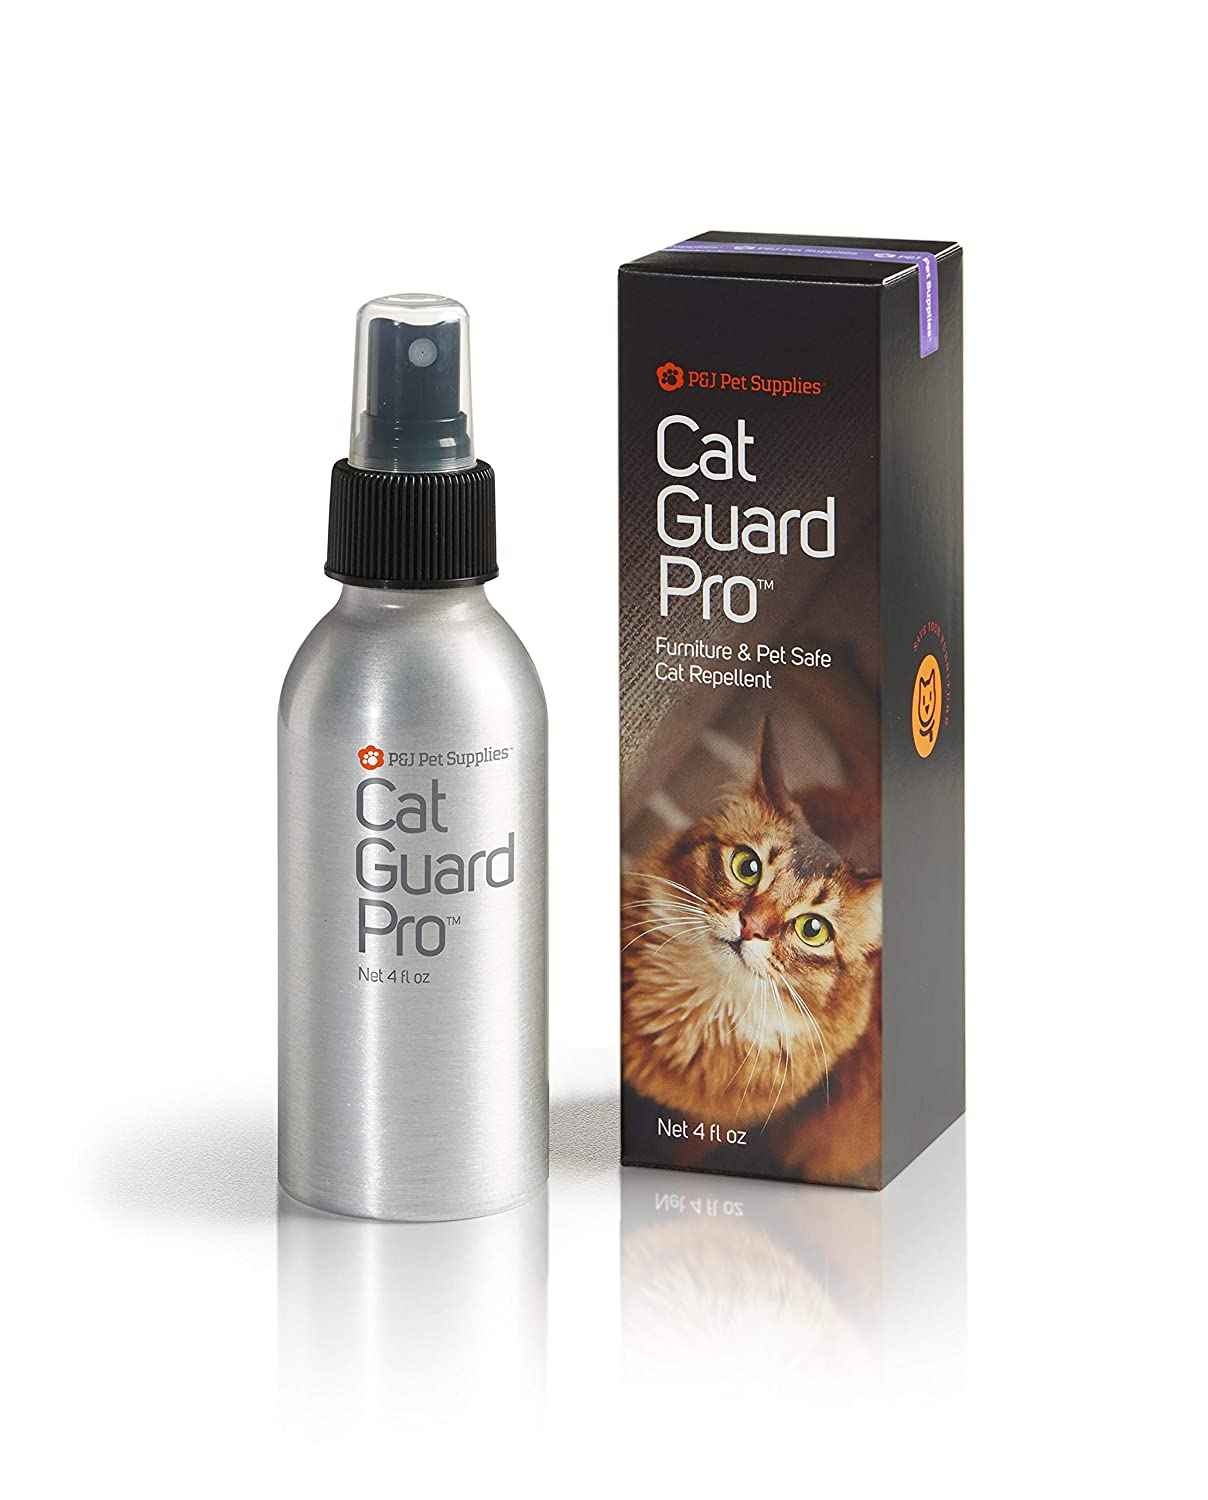 Cat Guard Pro Pet Safe Furniture Cat Repellent - 4oz Spray Bottle